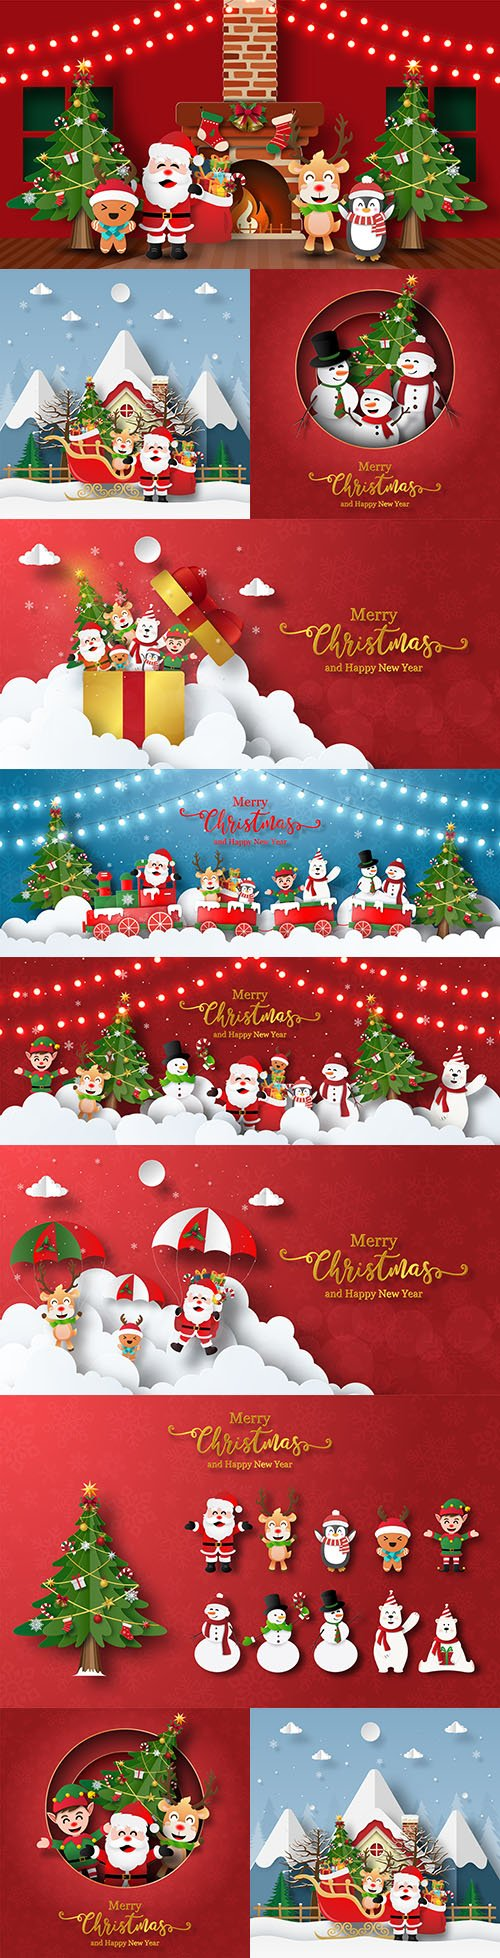 Christmas holiday greetings Santa and friends design